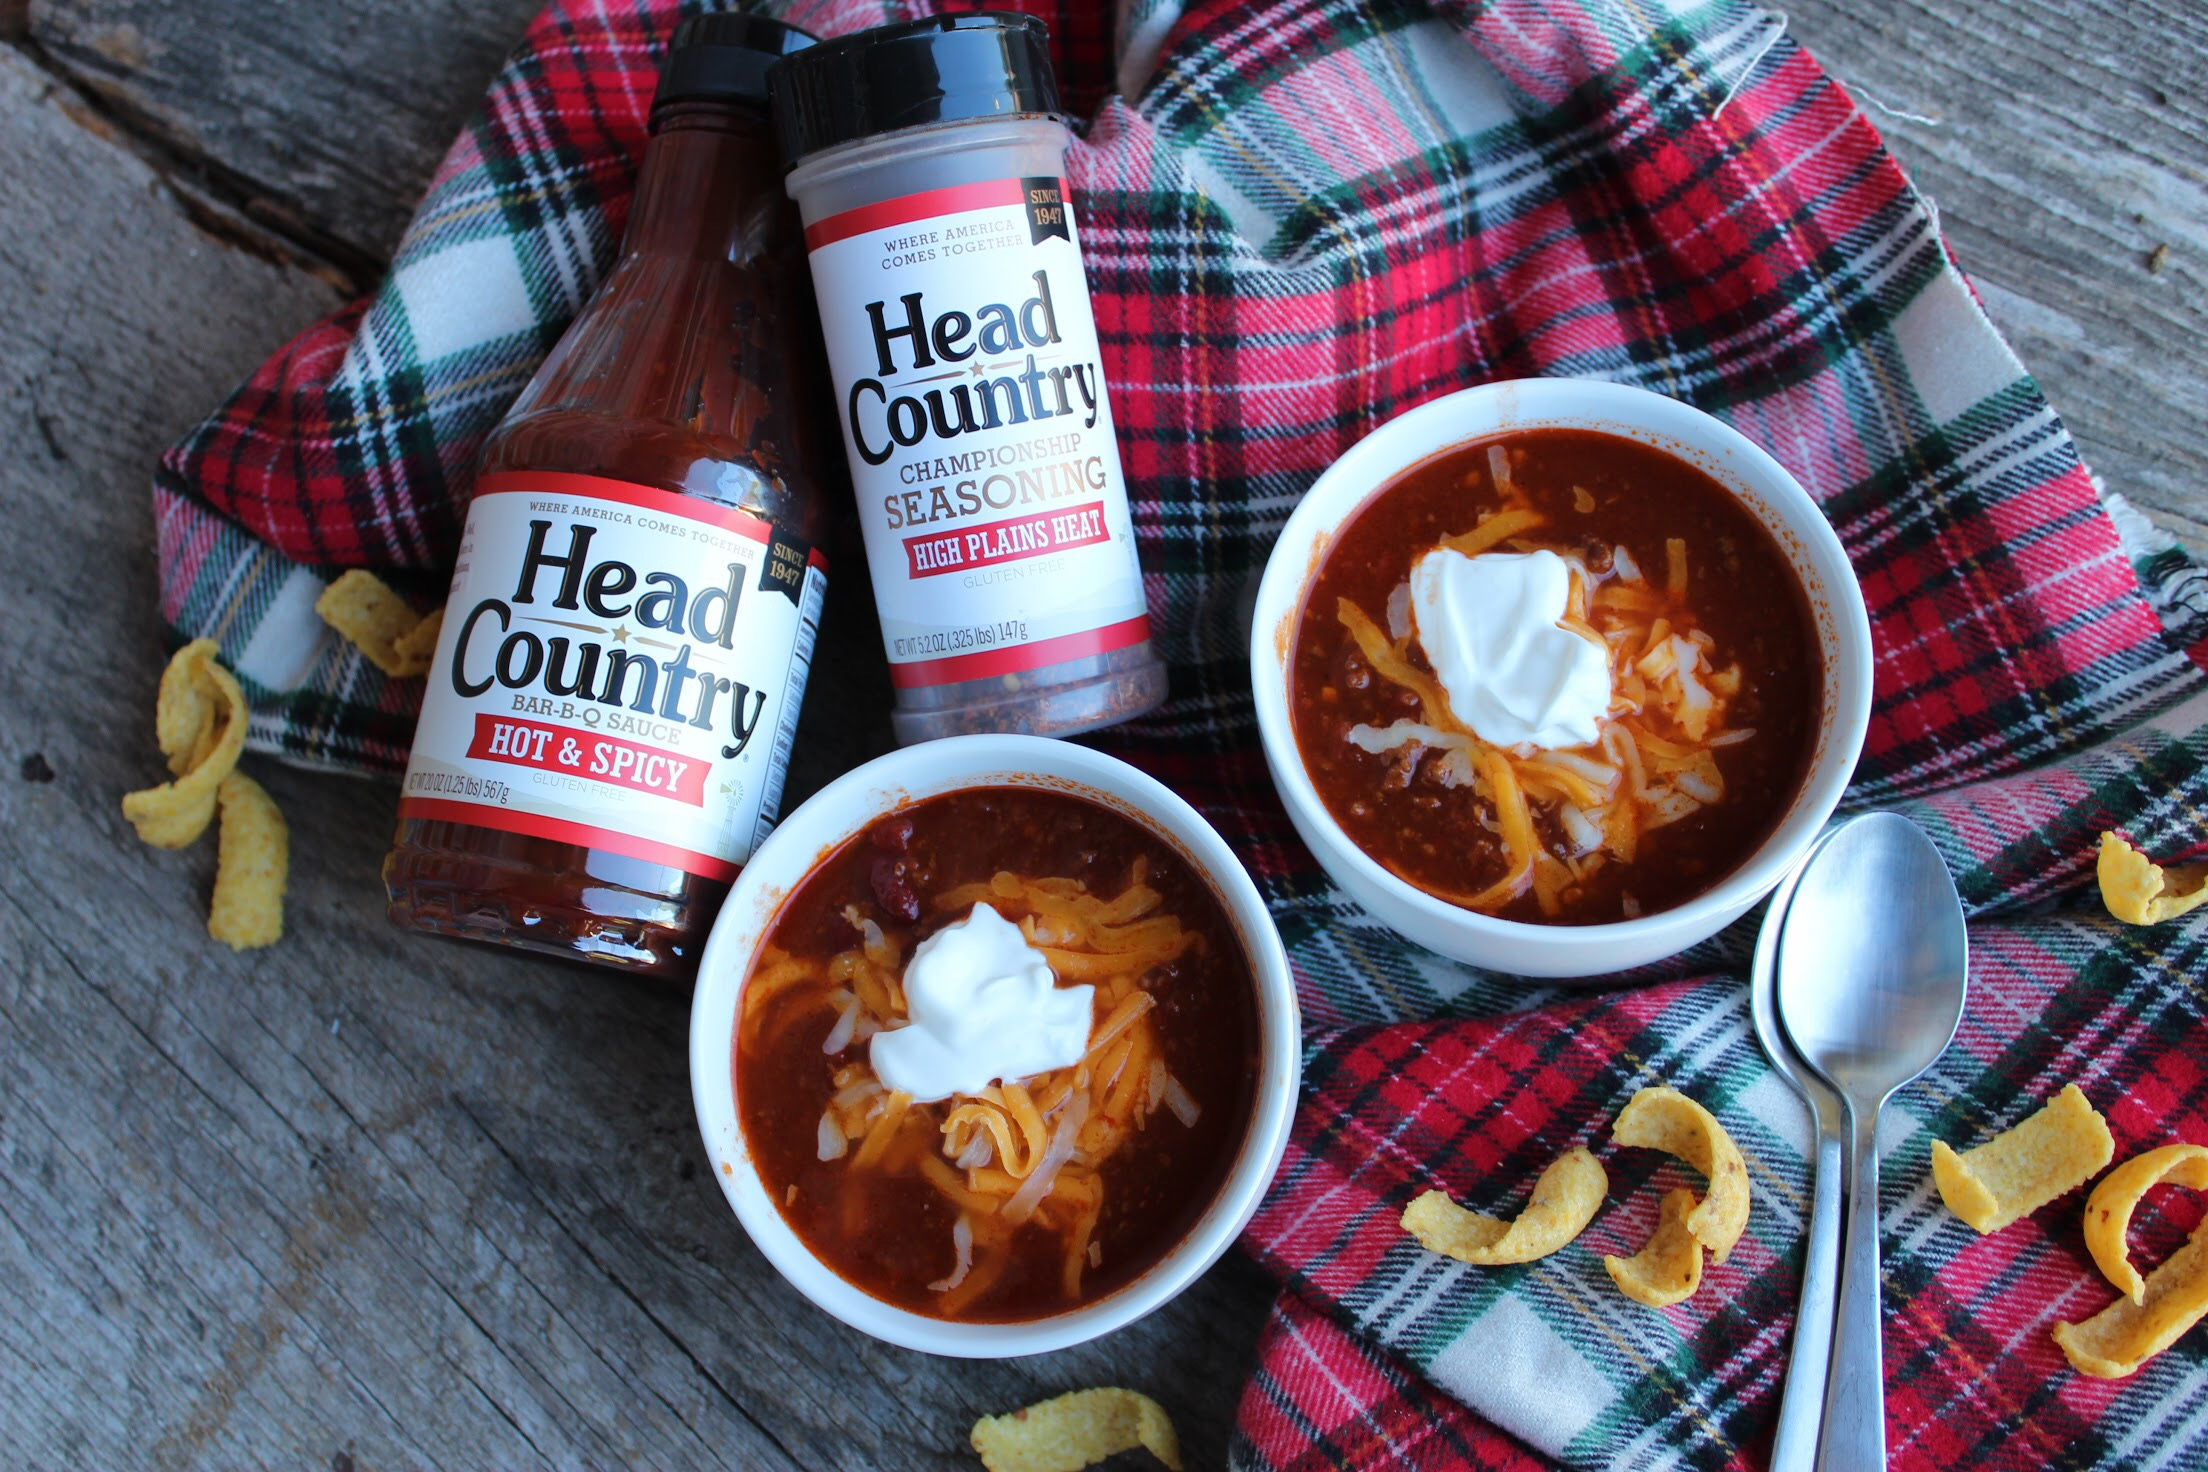 Instant Pot Spicy Chili | Best BBQ Sauce Recipes For Winter | Slow Cooker | Hot and Spicy Meat Lovers Chili Recipe | Featured